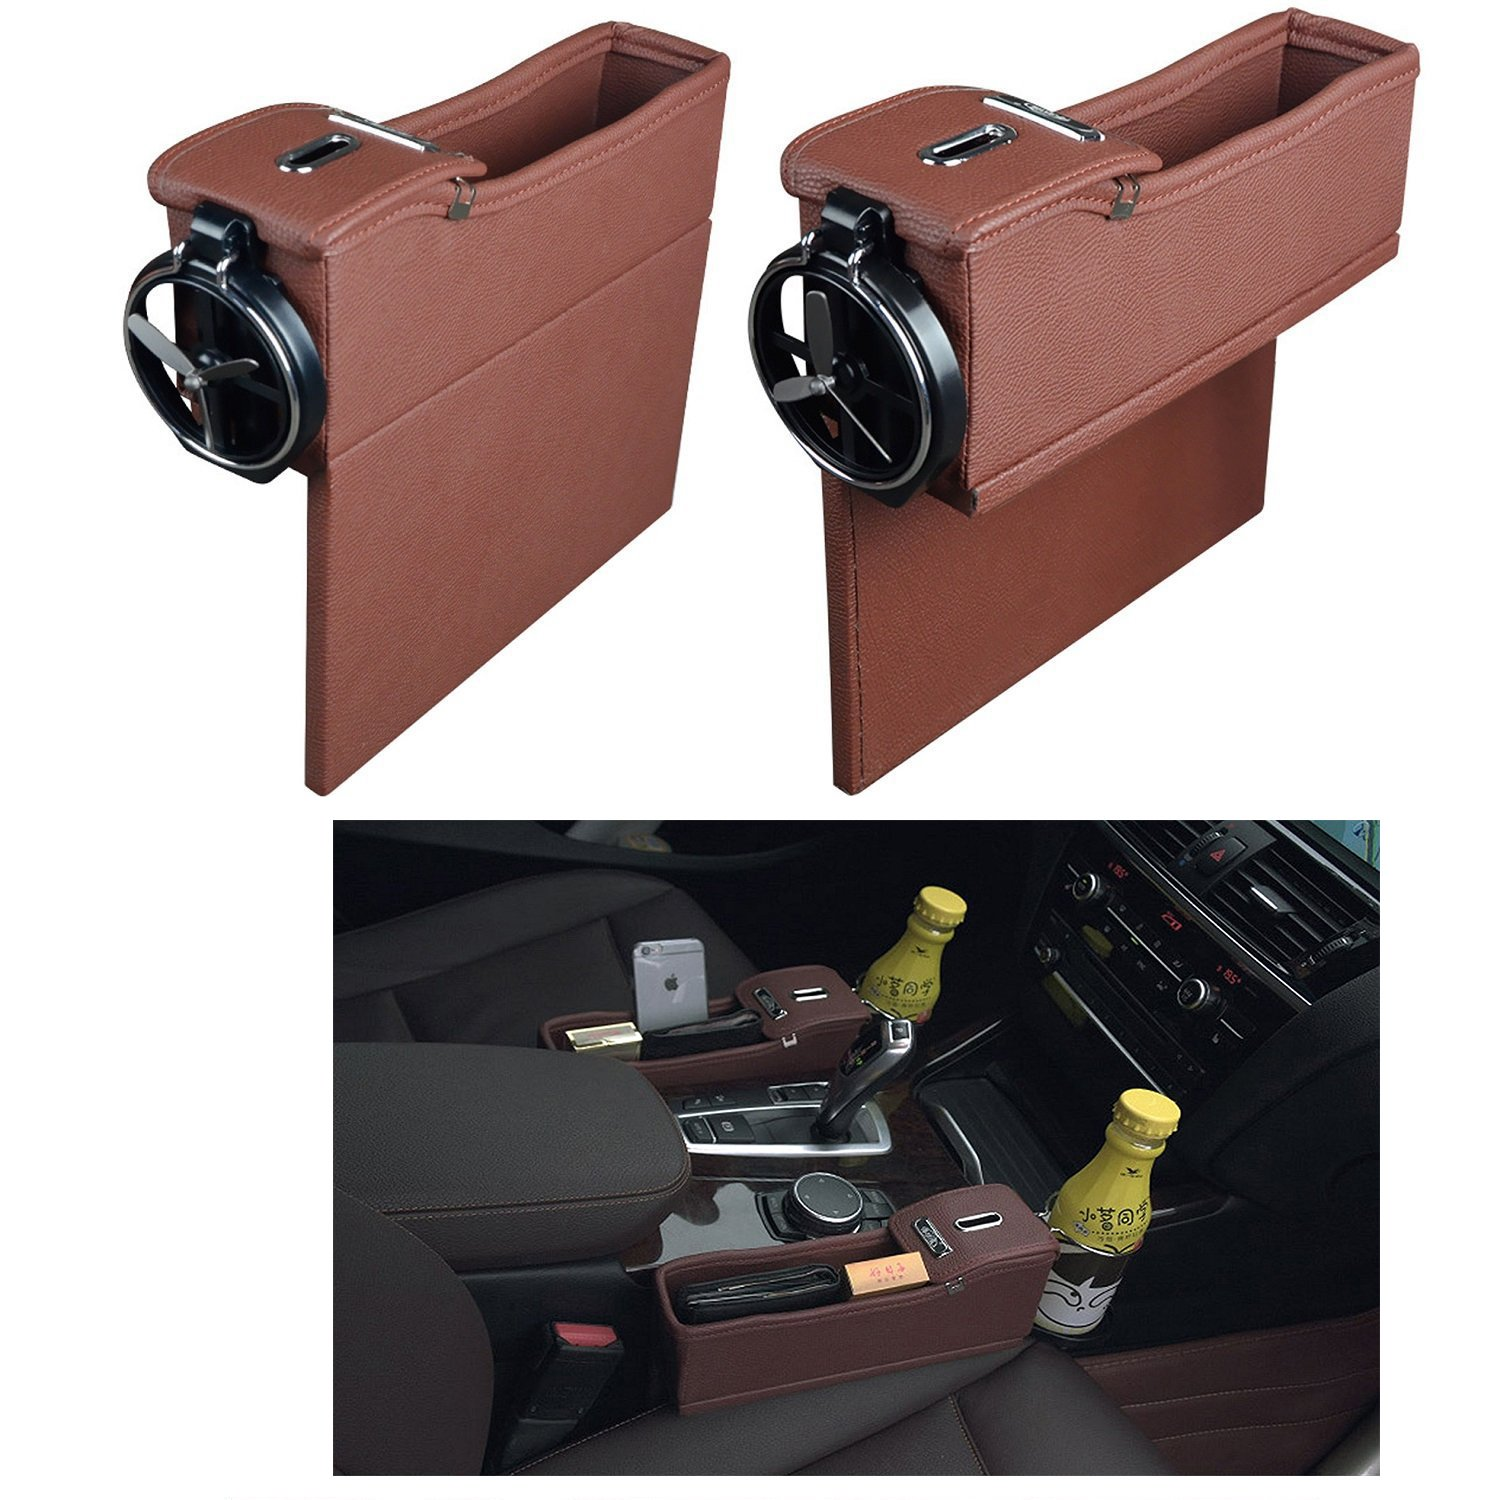 NEW POWER Premium PU Leather Side Pocket Organizer Car Seat Filler Gap Space Storage Box Bottle Cup Holder Coin Collector Car Interior Accessories 2PCS(Brown)